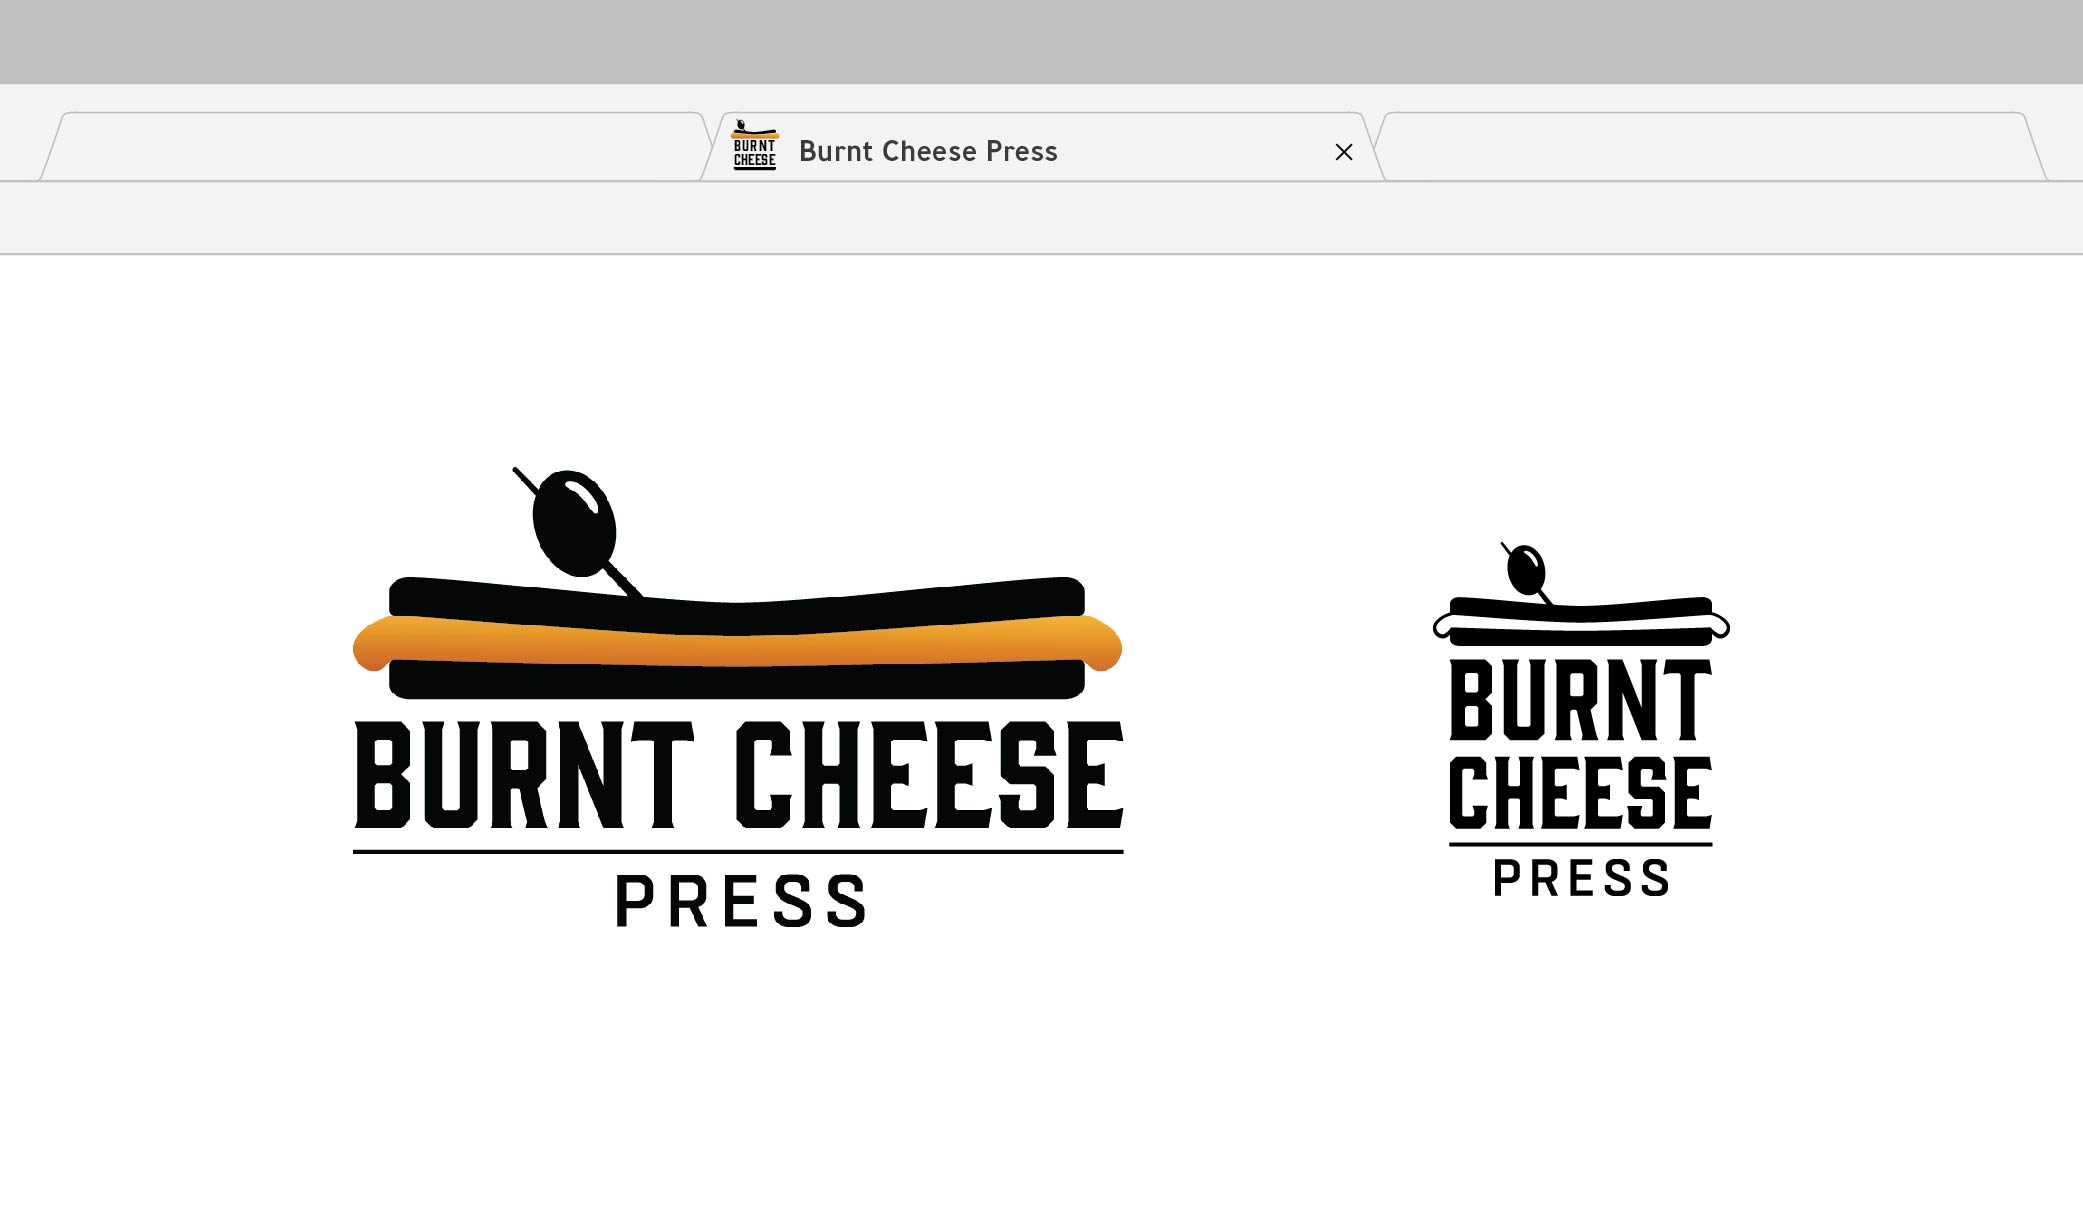 Burnt Cheese Press  PROJECT: This logo was designed for an independent publishing house focussing on cookbooks. The sandwich image is representative of the owner's first published cookbook,  The Ultimate Panini Press Cookbook,  as well as the direction she wanted to take the press: easy recipes for busy families. The logo-lockup is flexible in shape and color for a variety of uses including book spines and back covers, websites, and social media.